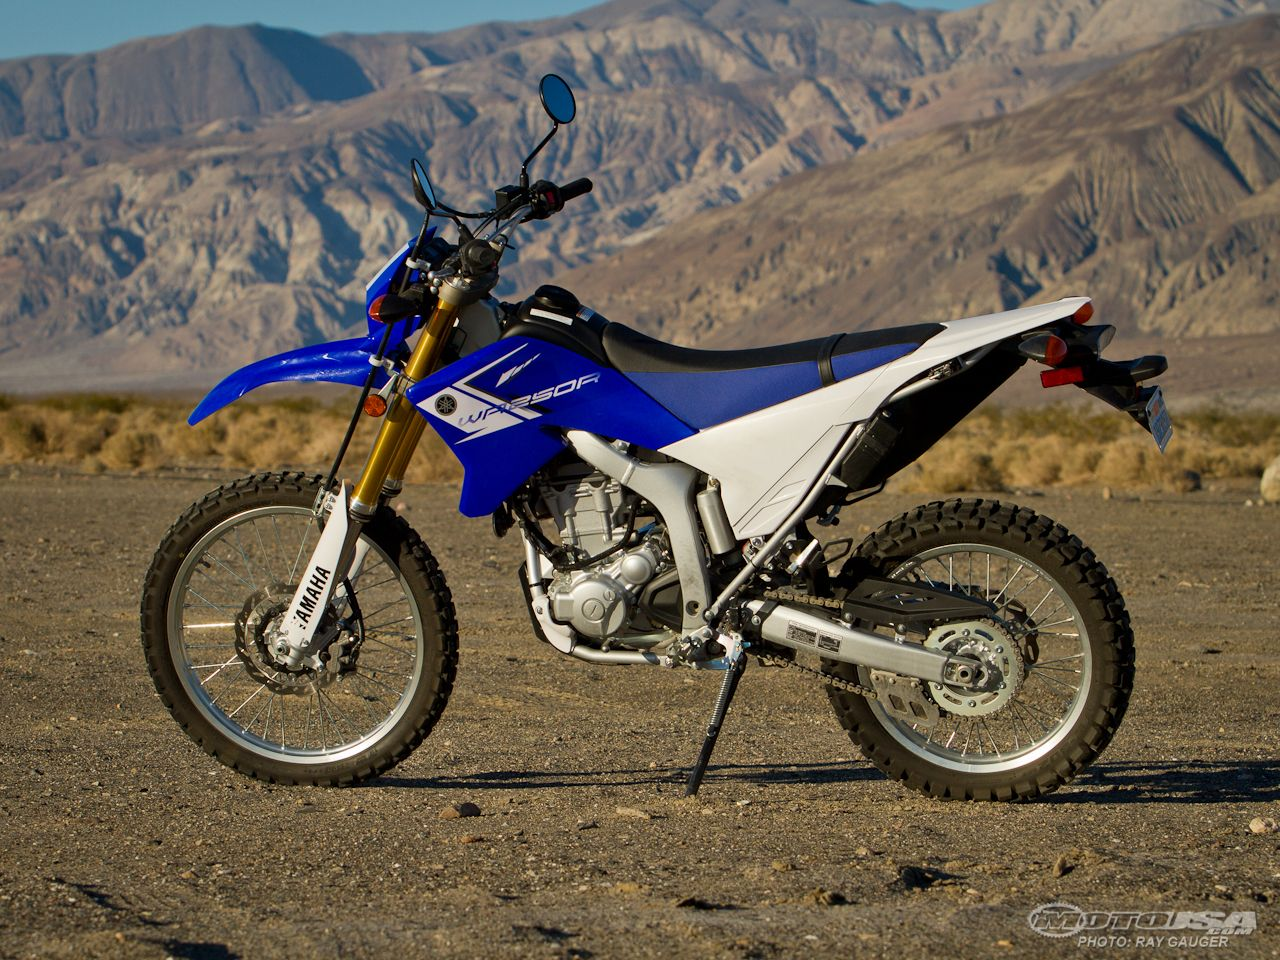 The wr250r is a great machine if you re looking for a bike that will